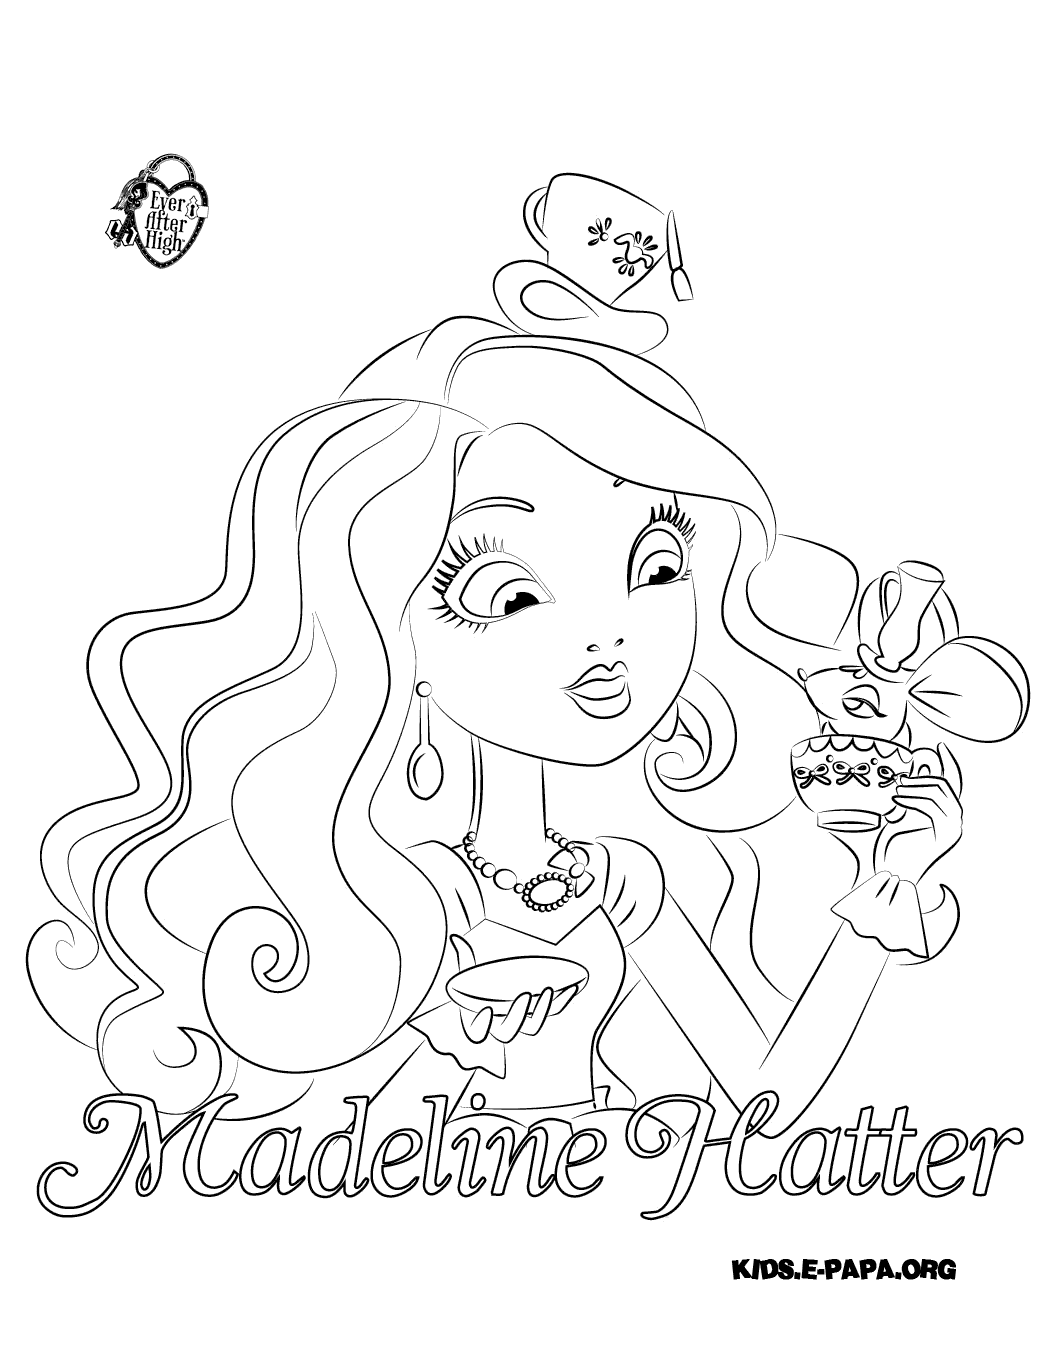 Suggestions Online | Images of Ashlynn Ella Coloring Pages